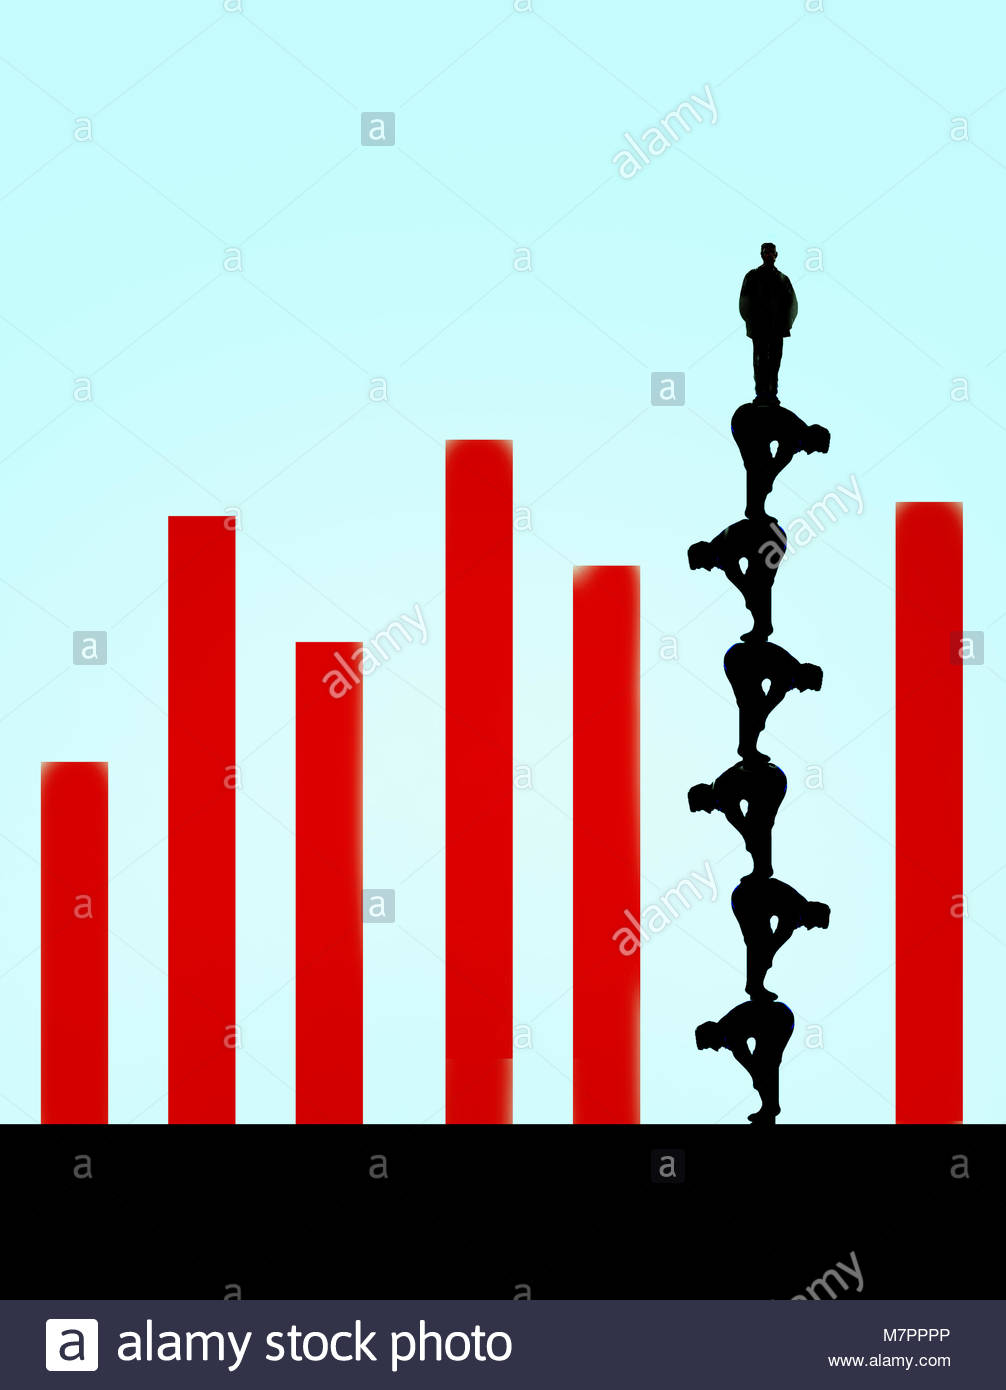 Man standing on top of human pyramid forming column in bar chart - Stock Image